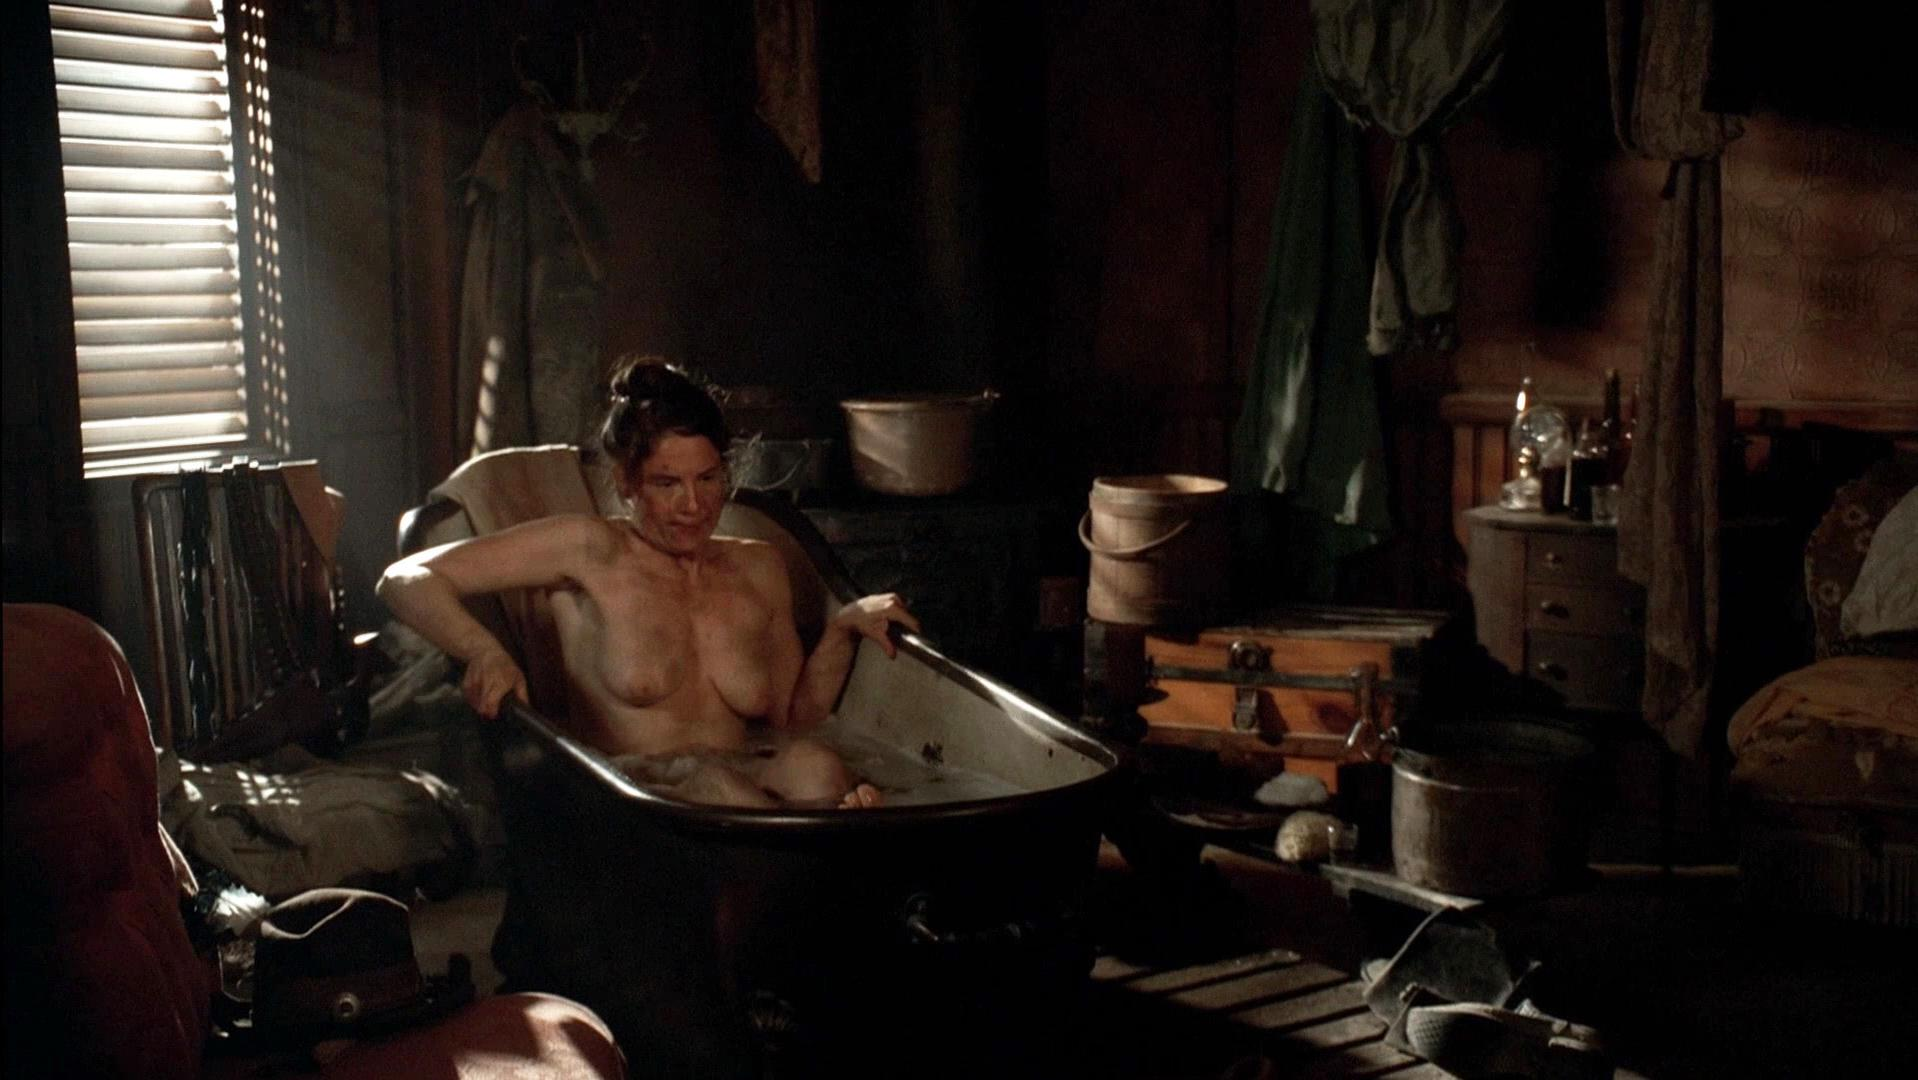 Robin Weigert nude - Deadwood s03e02-07 (2006)